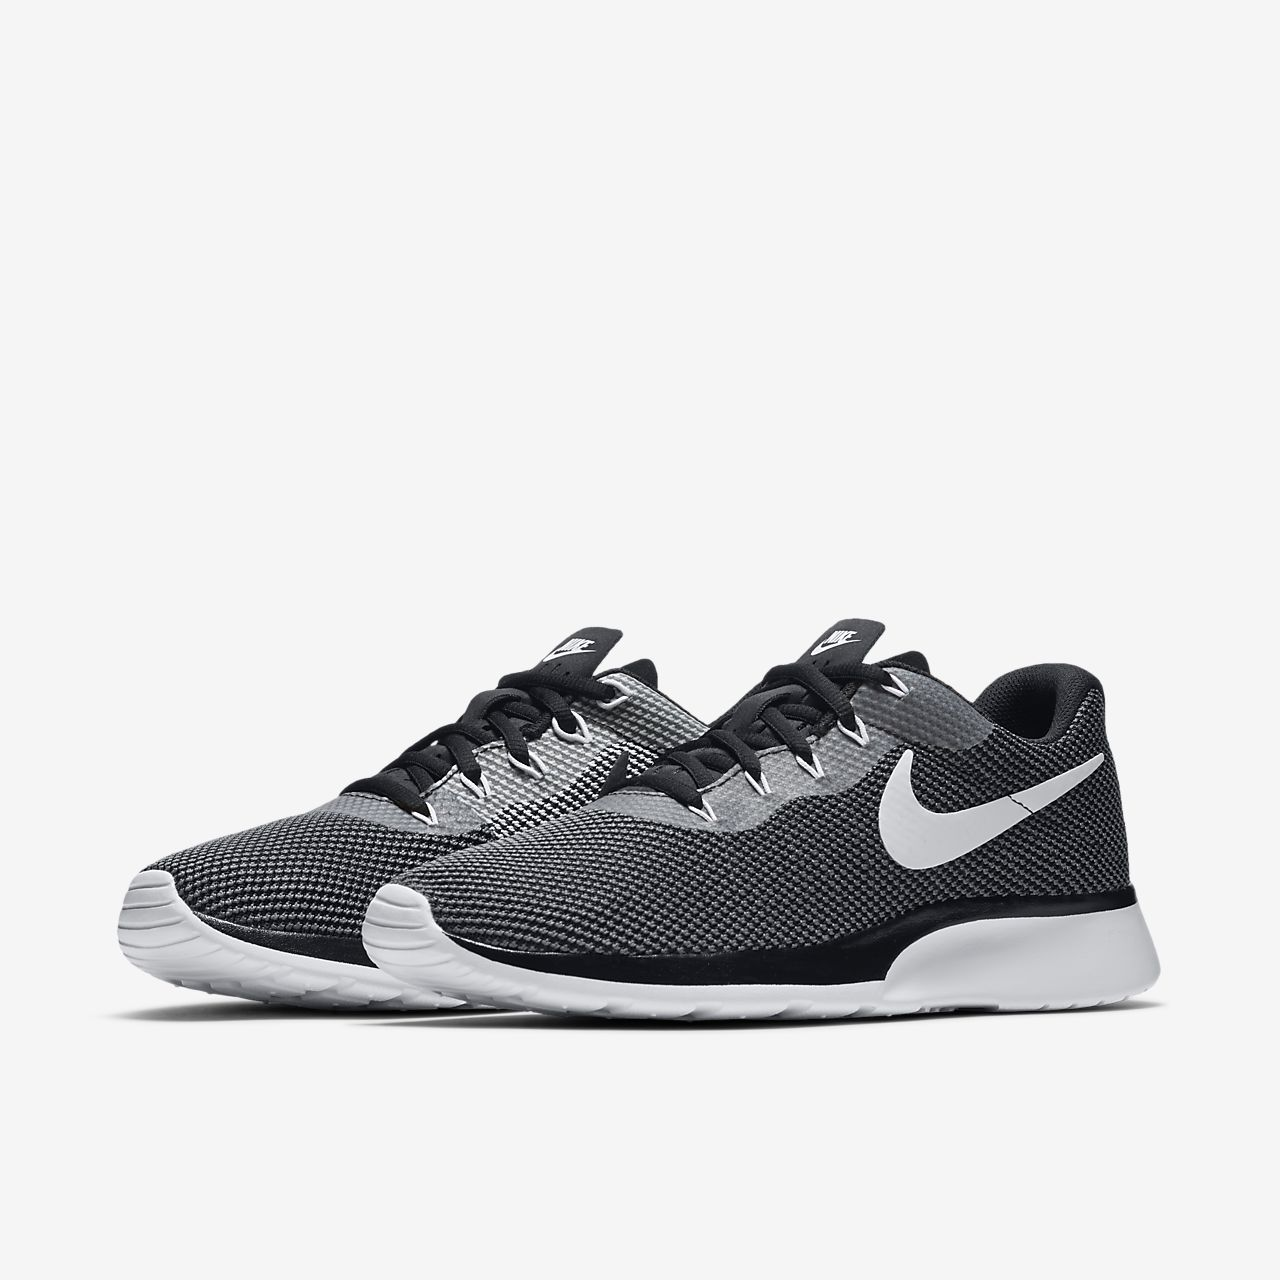 nike tanjun uomo black and white